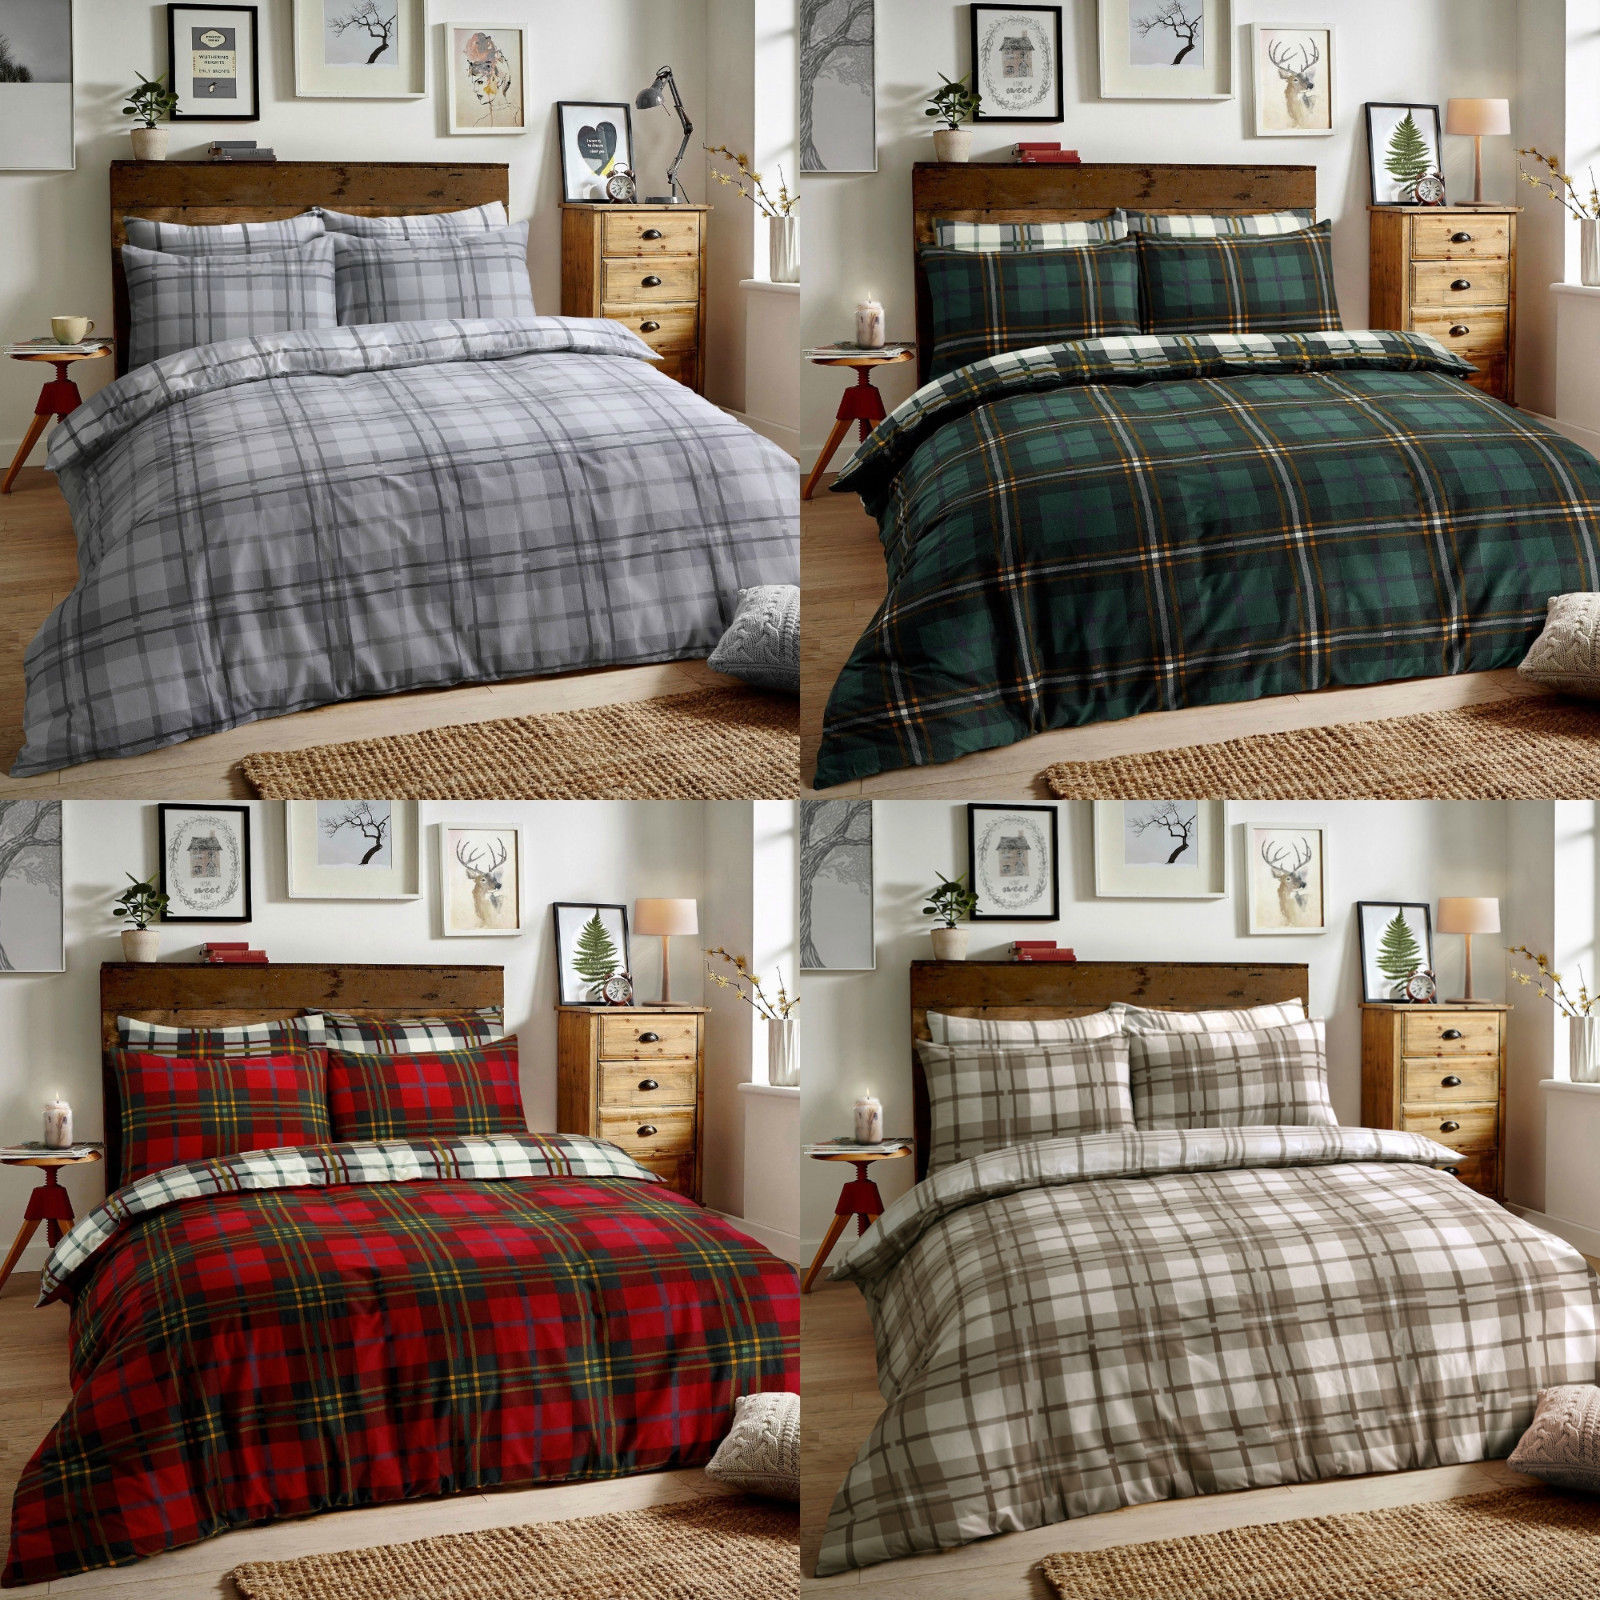 Flannelette Duvet Quilt Cover Bedding Set With Matching Pillowcase